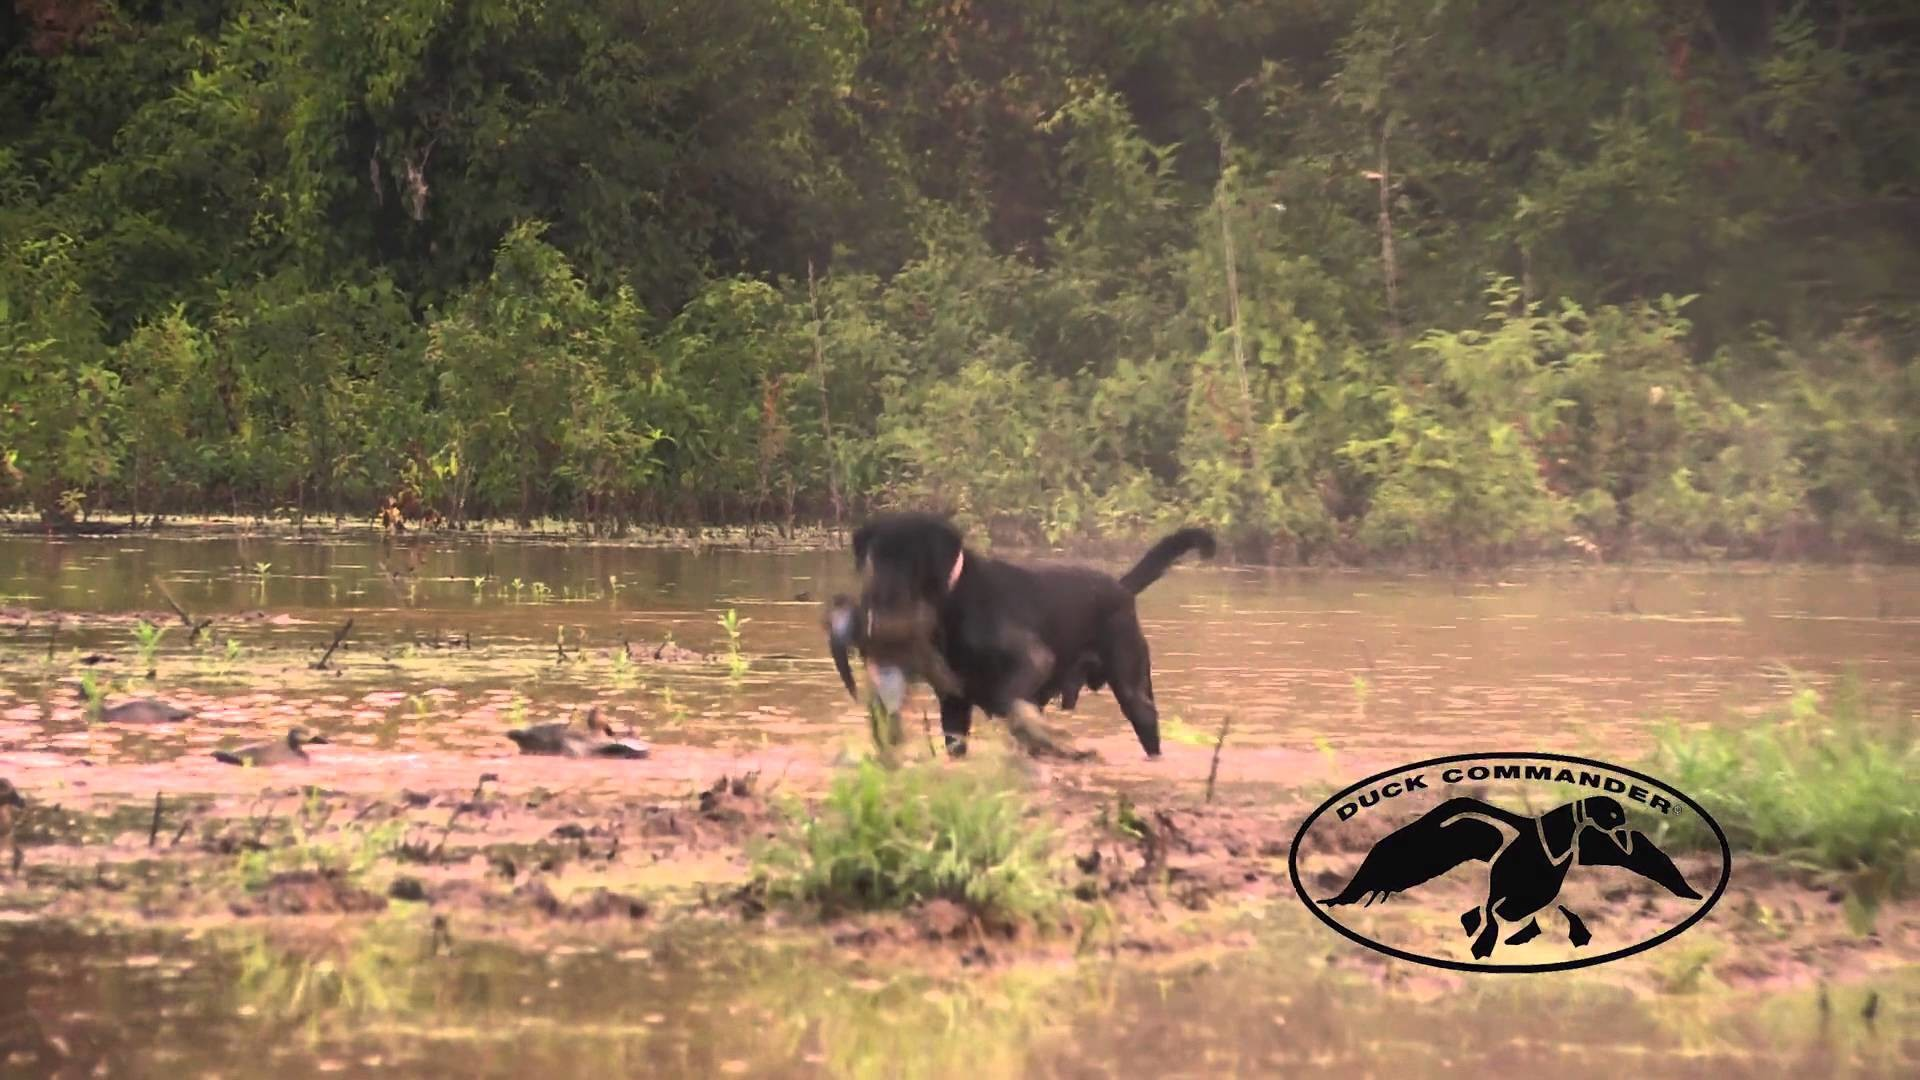 Update from the Duck Commander Blind #6